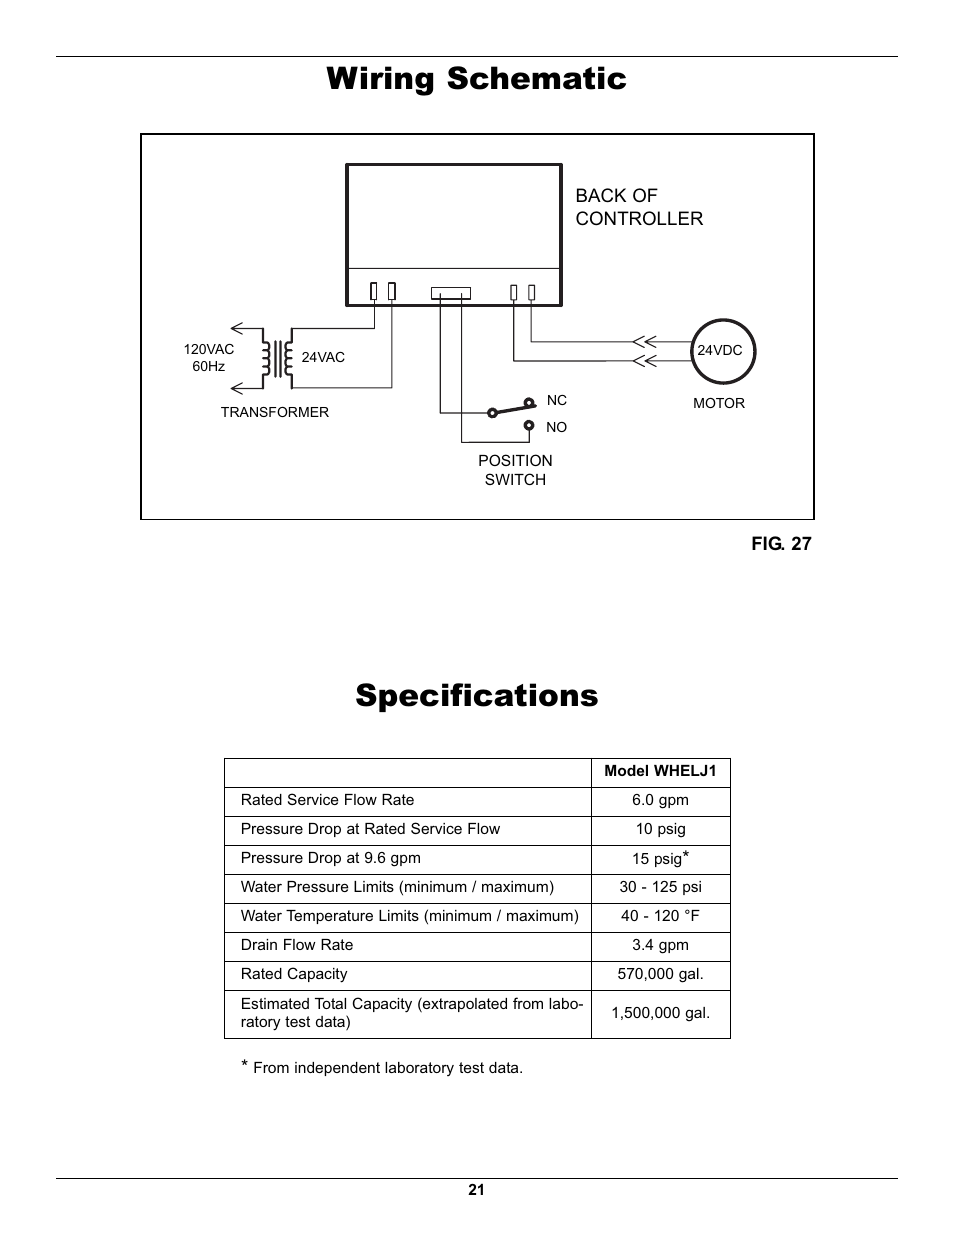 Wiring Schematic  Specifications